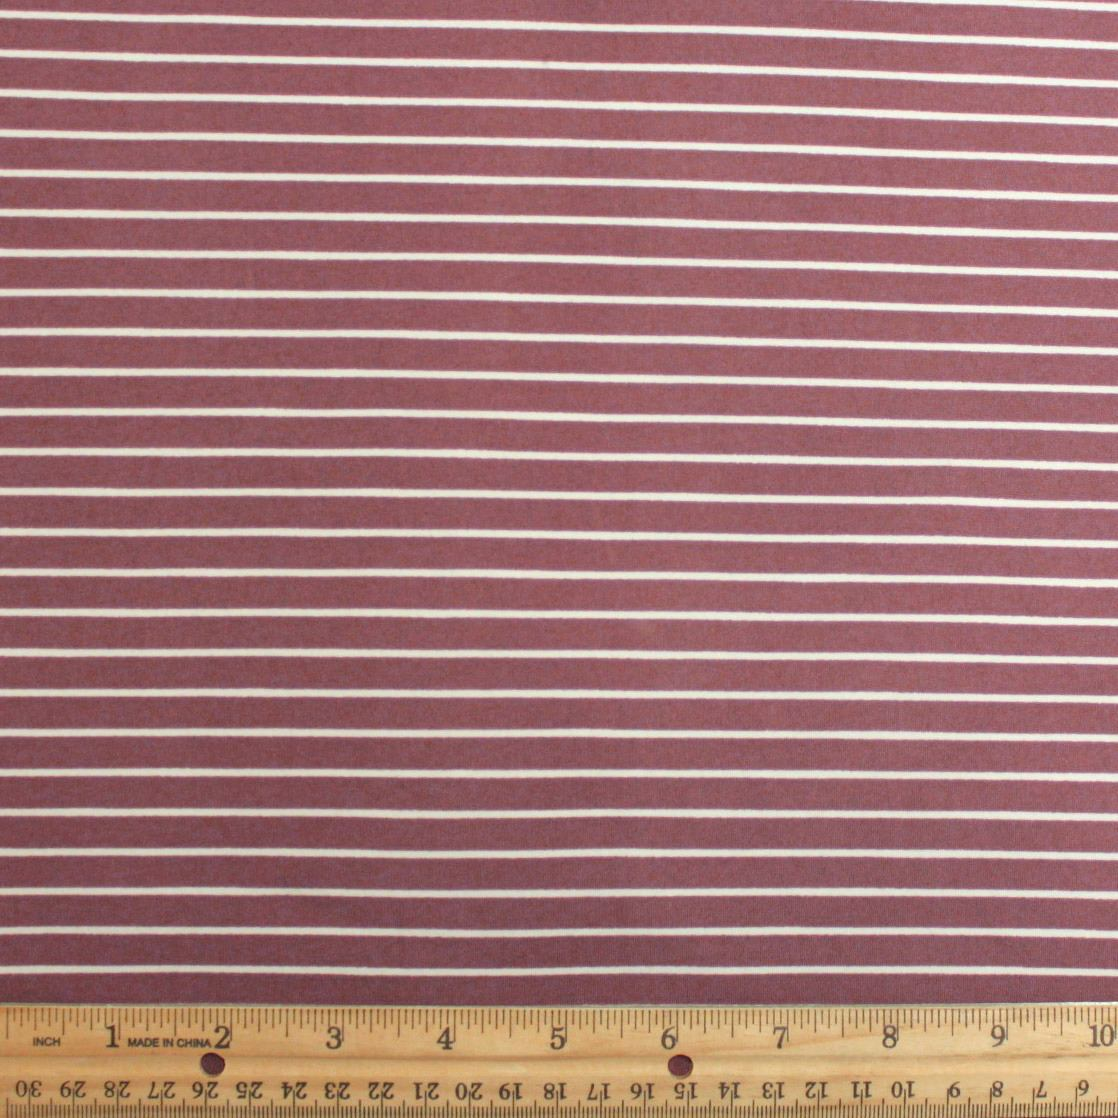 Dark Mauve Light Burgundy and Off White Stripe Double Brushed Poly Spandex Knit, 1 yard - Raspberry Creek Fabrics